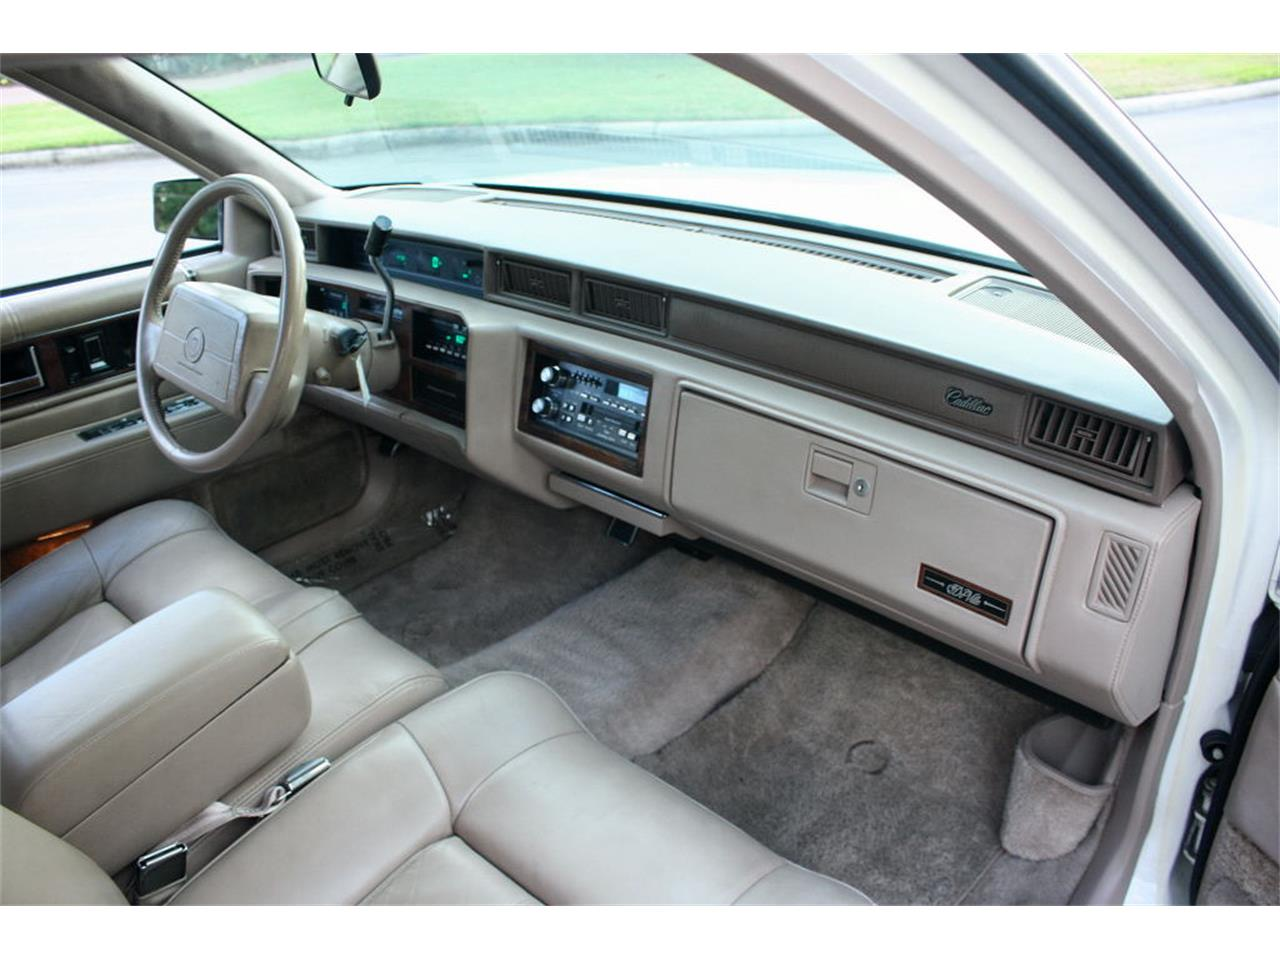 Large Picture of '91 Cadillac Sedan located in Florida - $9,500.00 Offered by MJC Classic Cars - L5XM